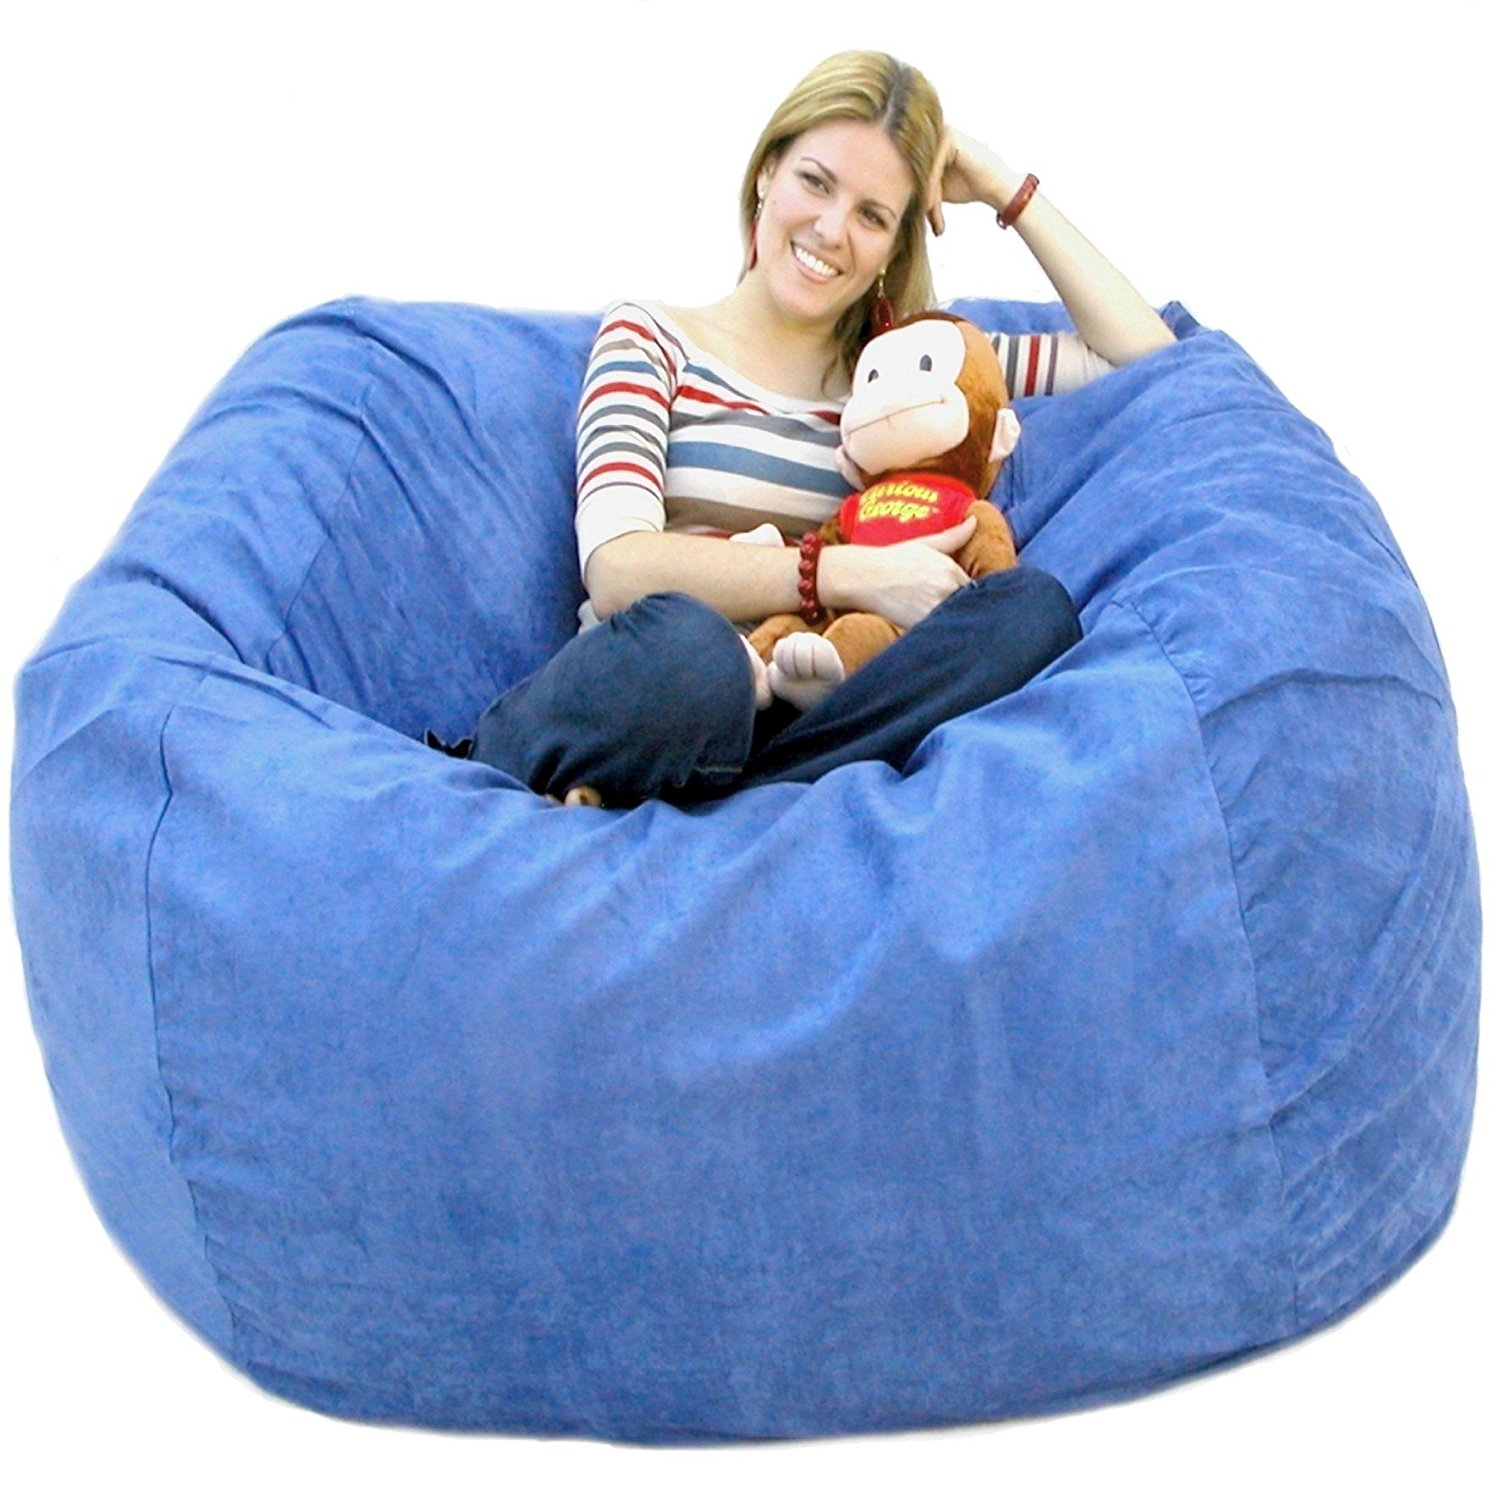 BEST BEAN BAG CHAIRS FOR ADULT IN 2019